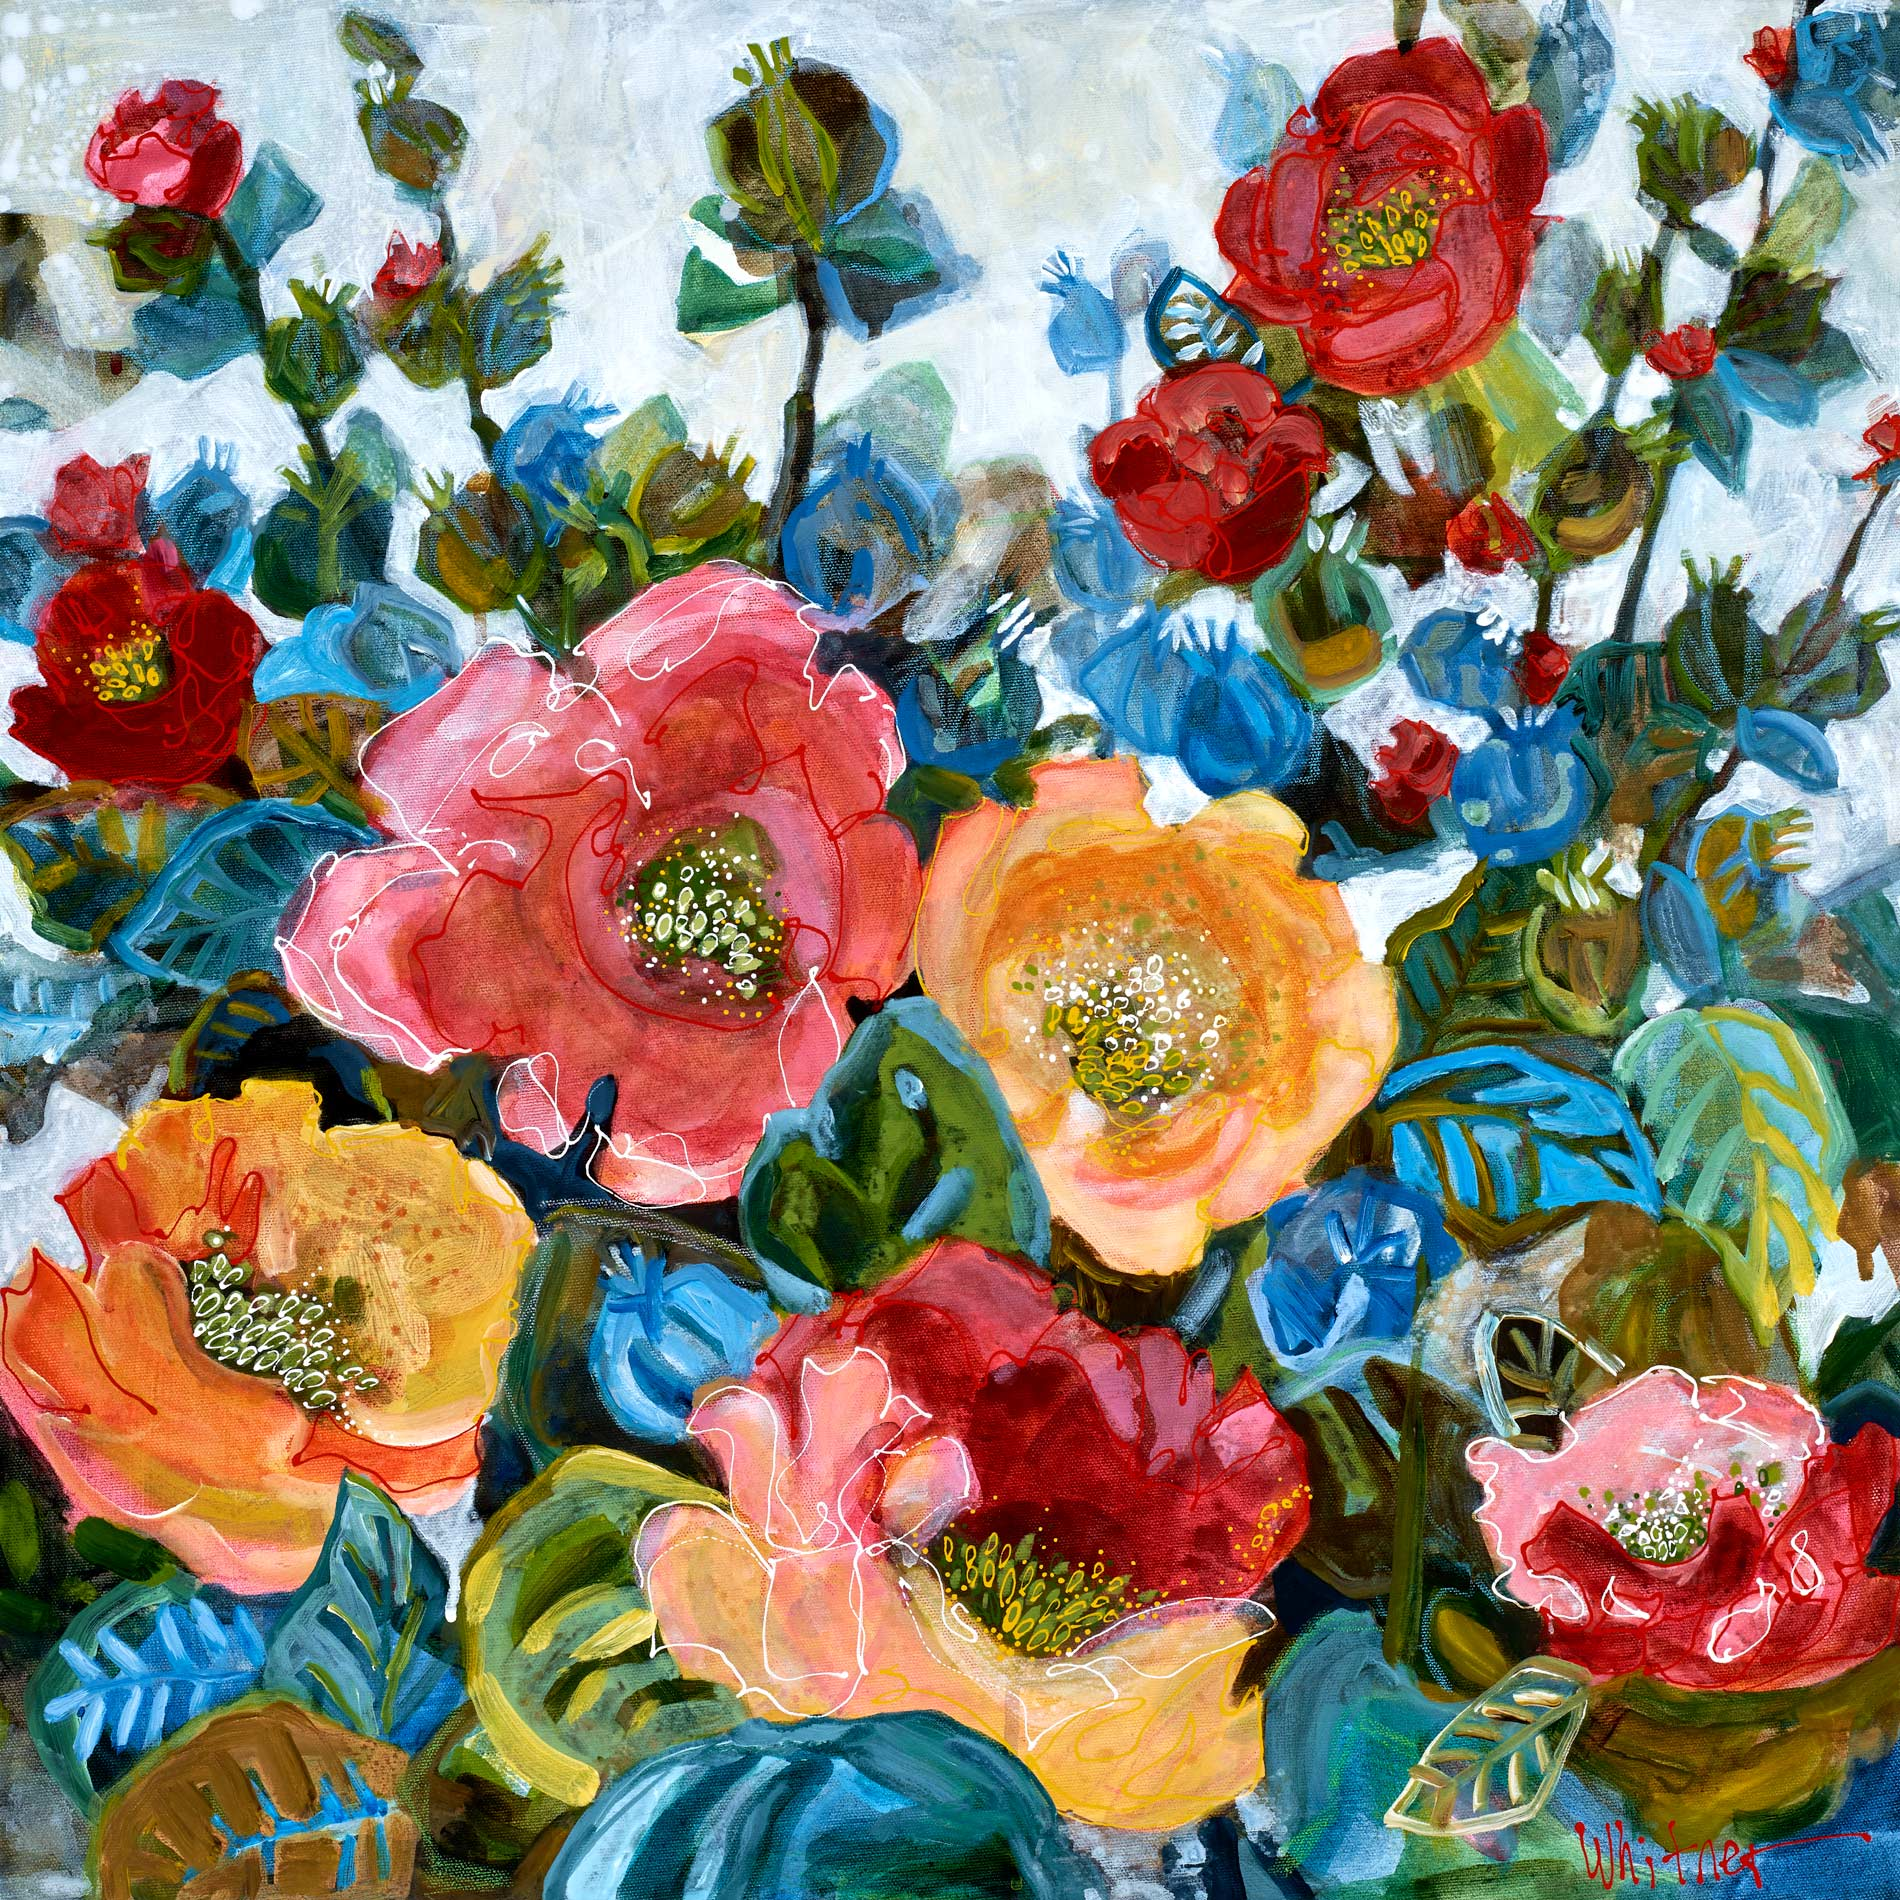 Lance-Whitner-Garden Flowers painting available at sundancecatalog.com